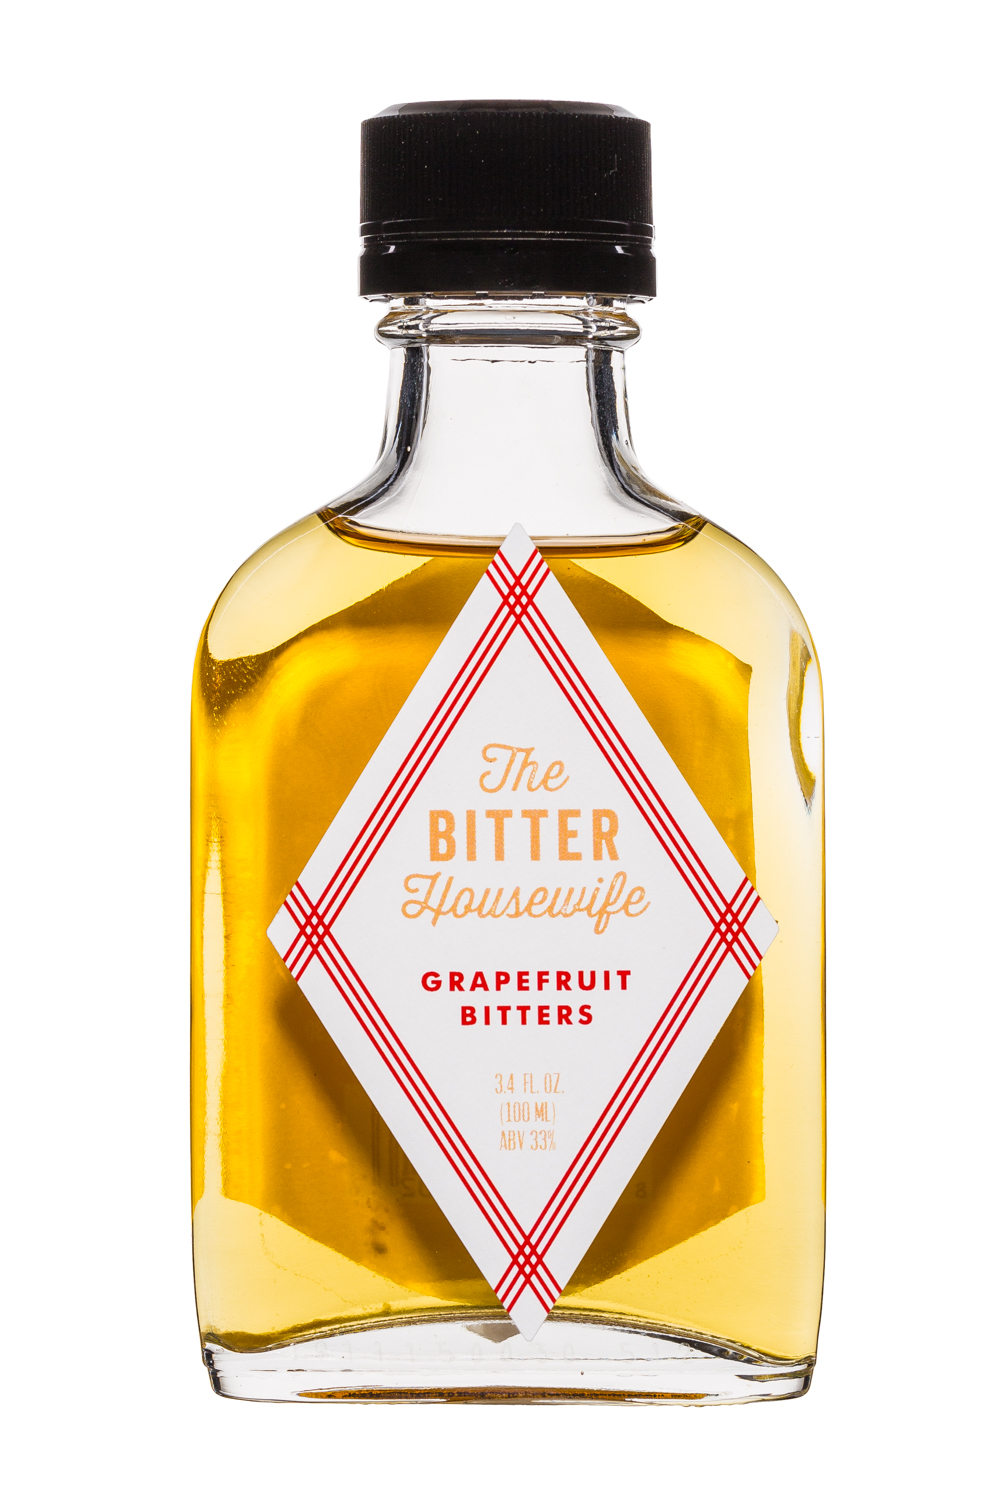 The Bitter housewife- Grapefruit Bitters